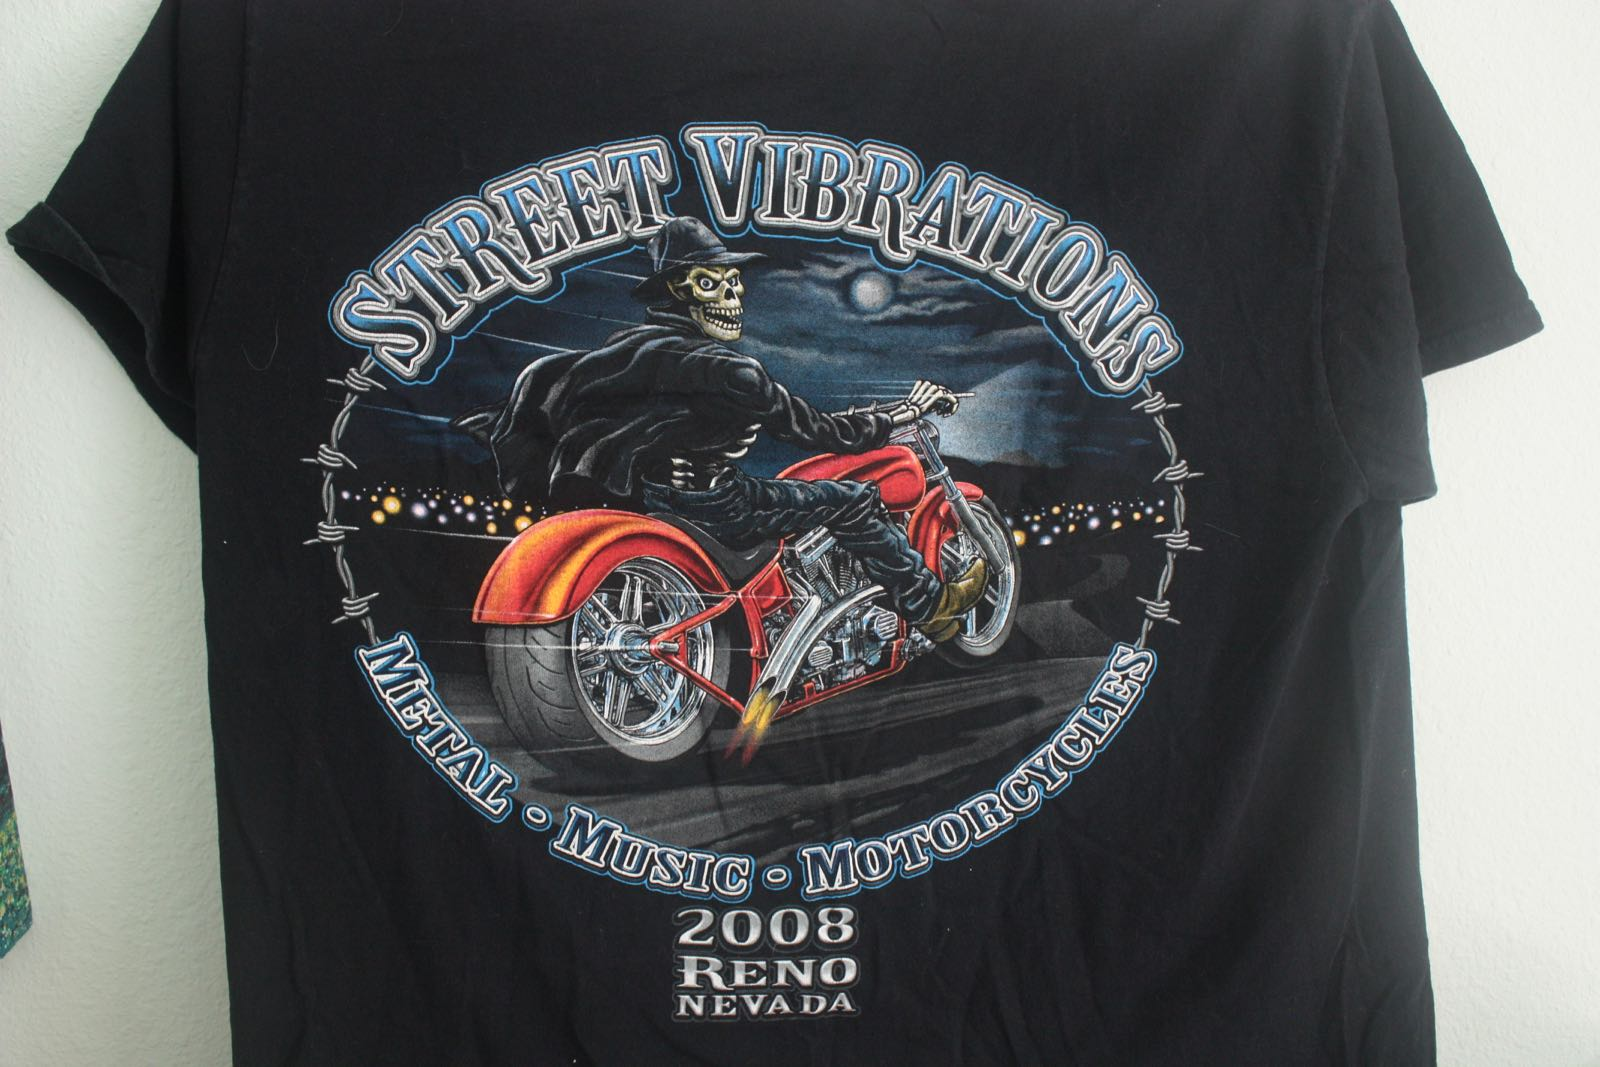 Reno Street Vibrations Motorcycle Fest Tee 2